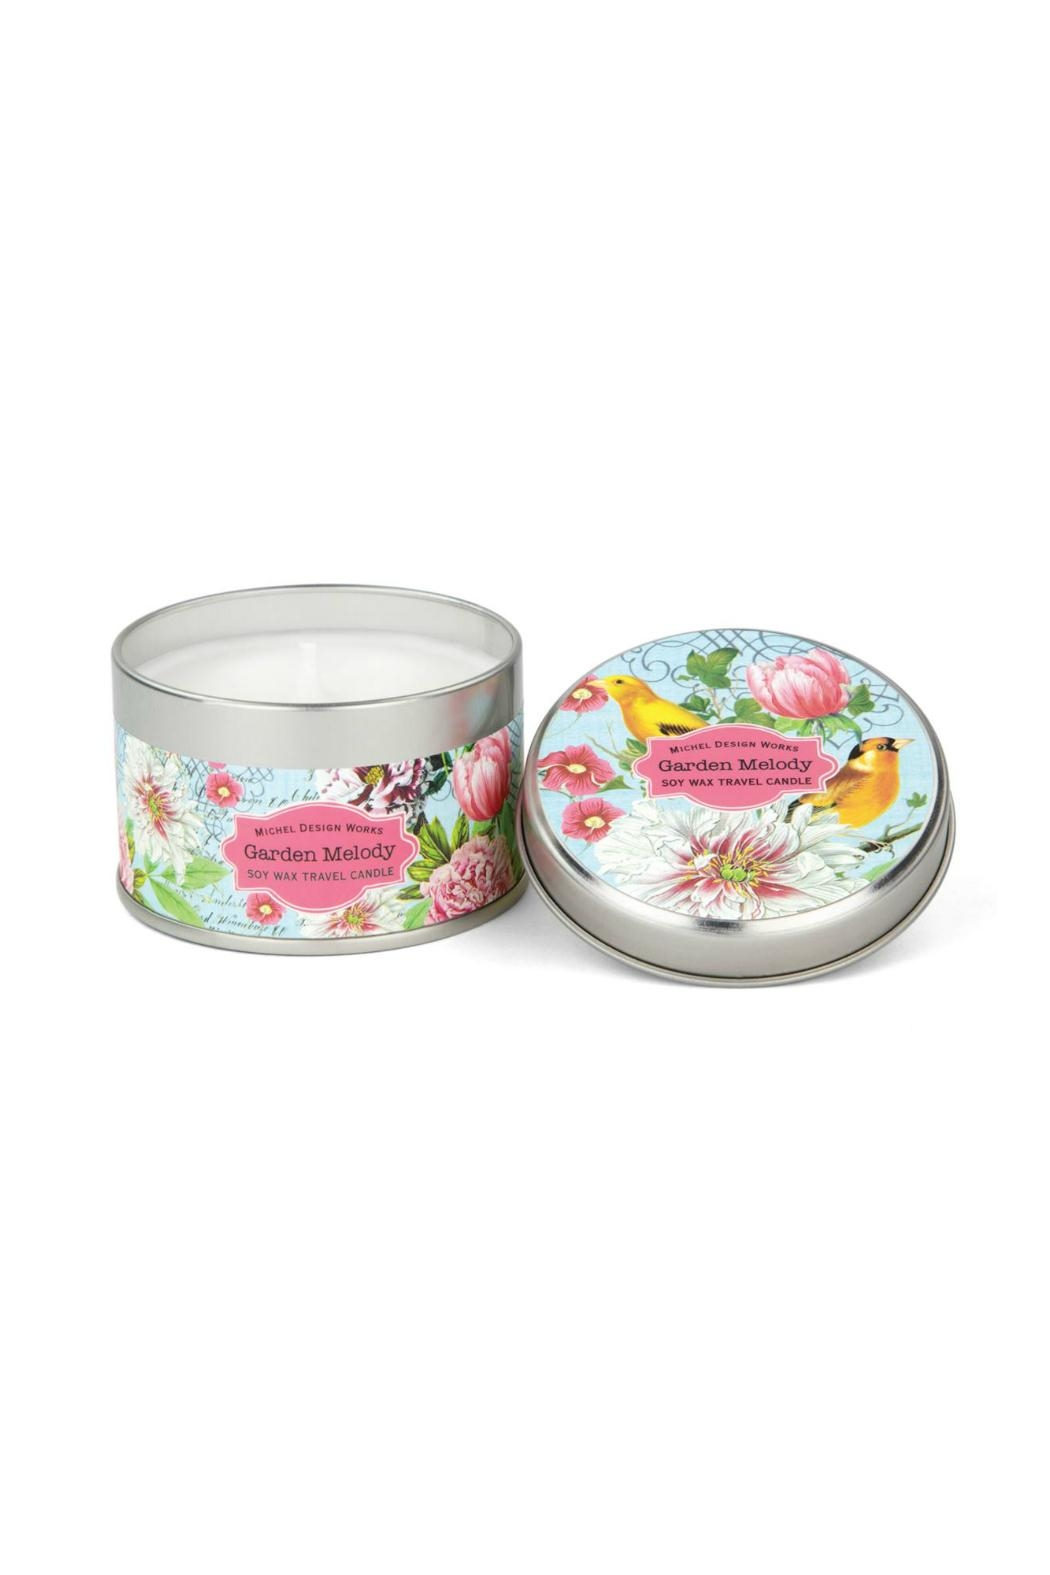 Michel Design Works Garden/melody Travel Candle - Main Image